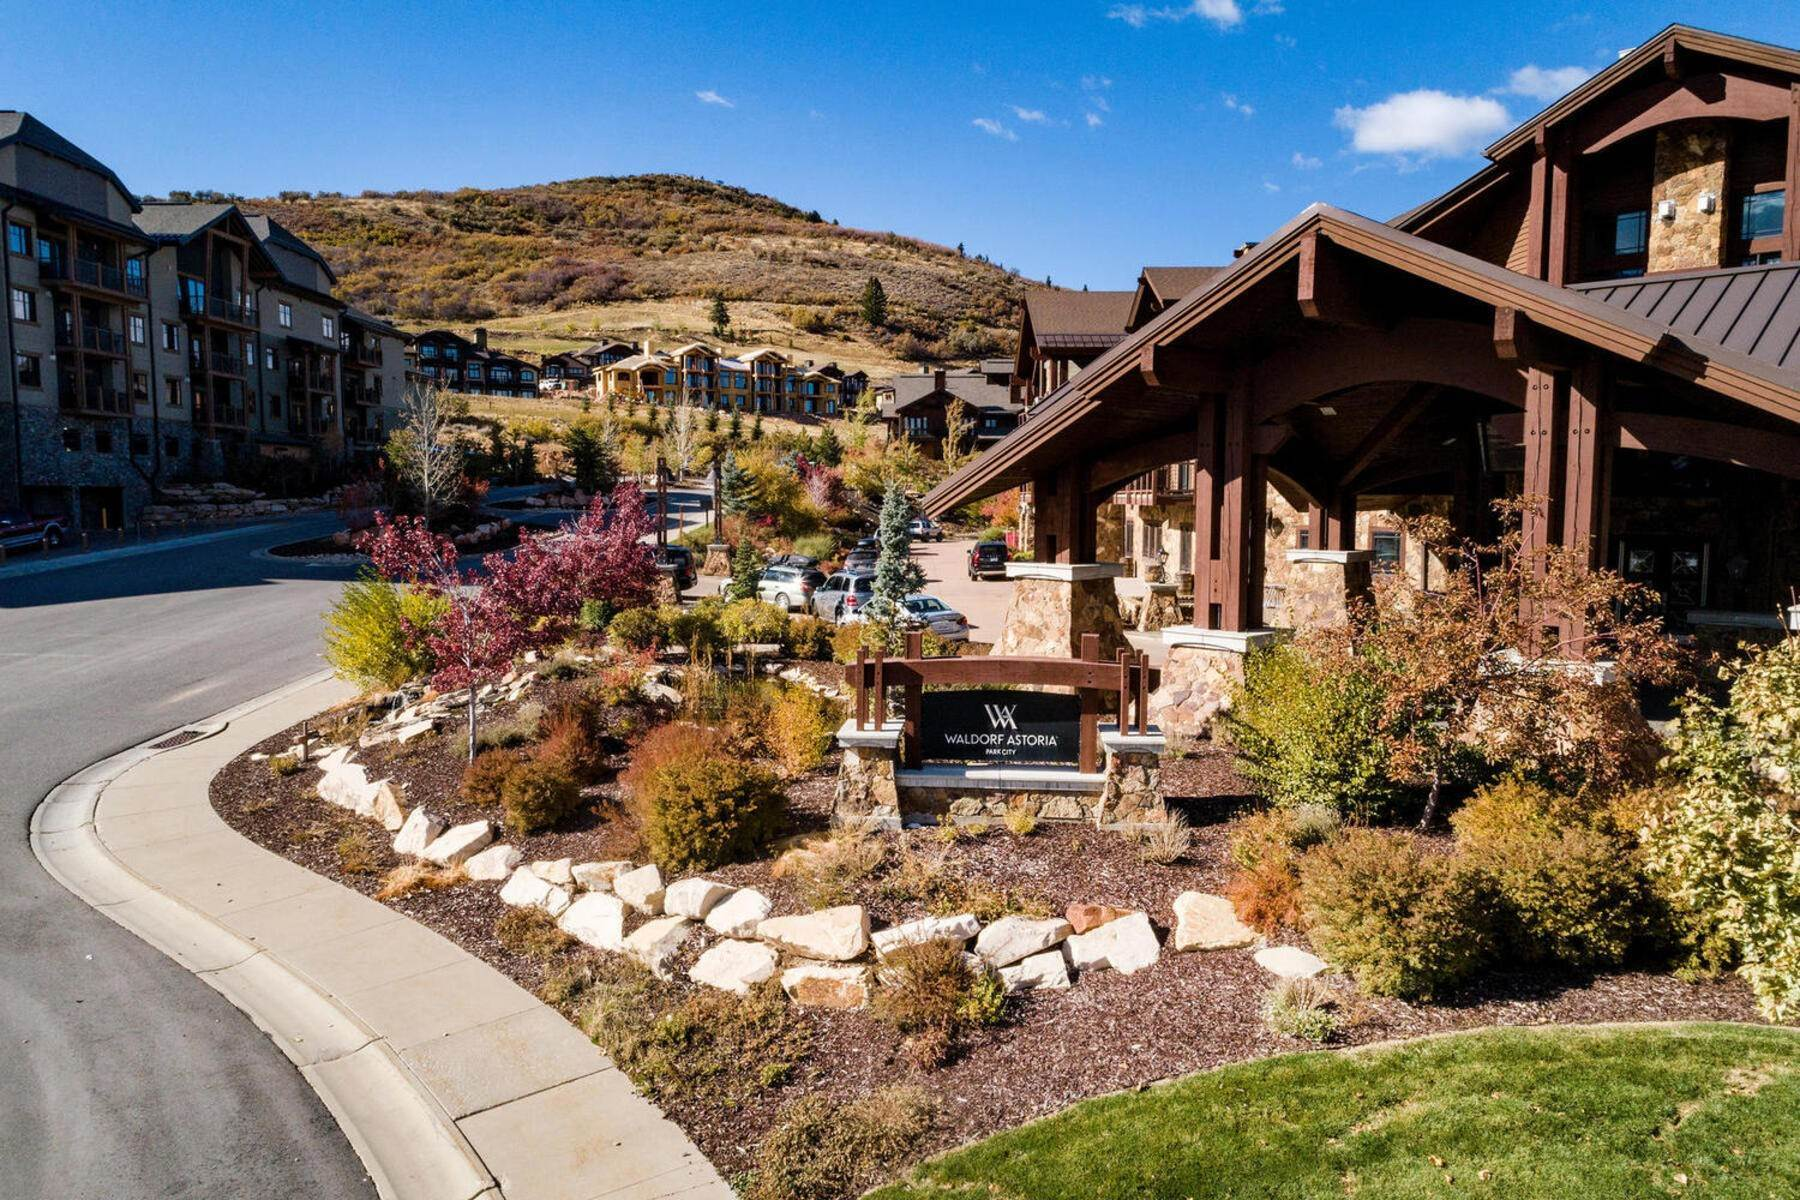 40. Condominiums for Sale at Only 4-Bedroom Available at Waldorf Astoria, Top Floor, Penthouse Unit 2100 W Frostwood Blvd, #7117 Park City, Utah 84098 United States